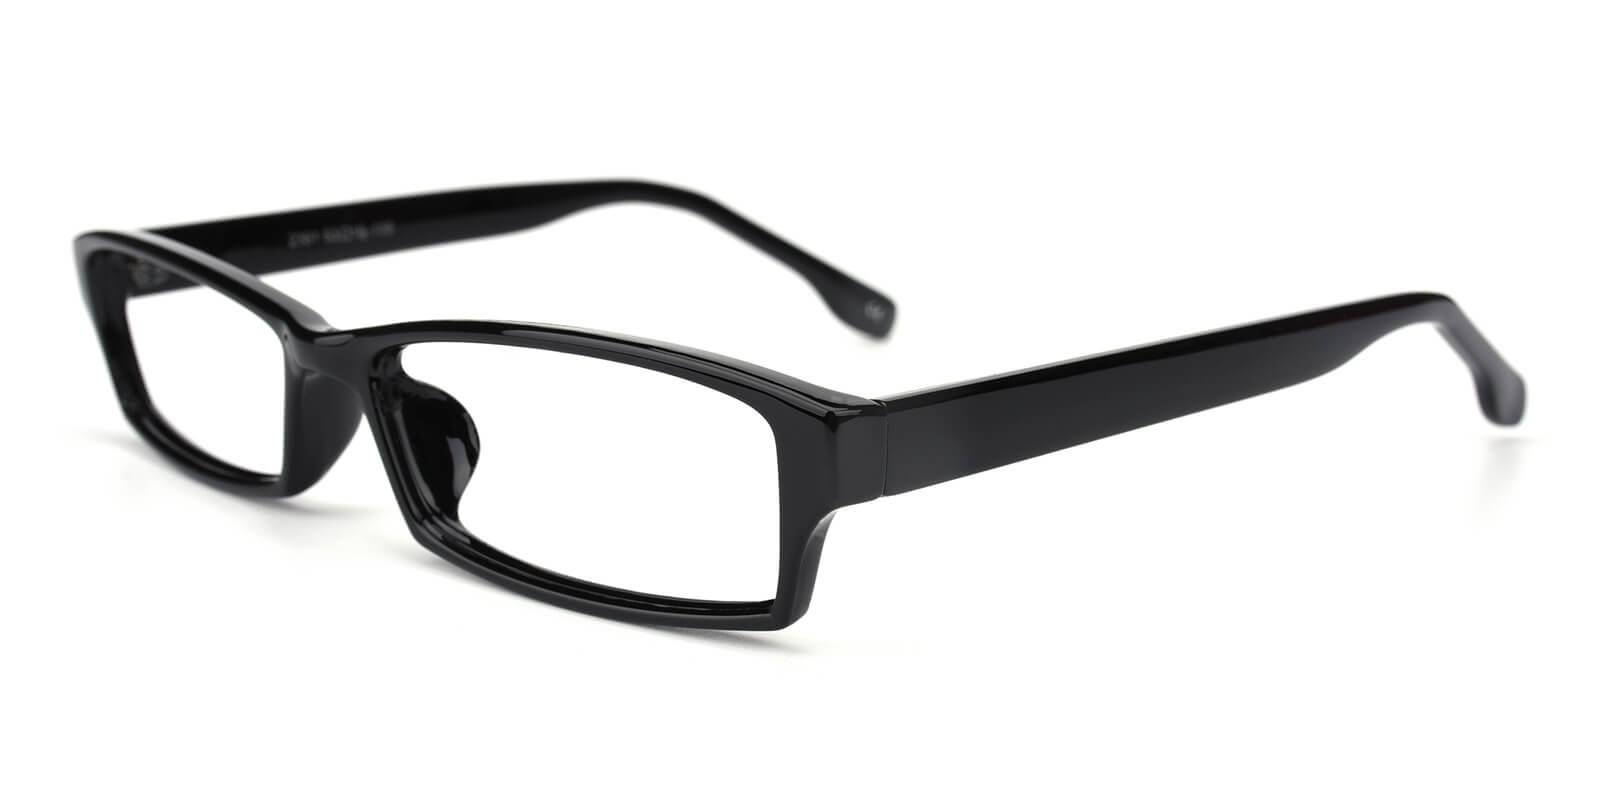 Relica-Black-Rectangle-Plastic-Eyeglasses-additional1